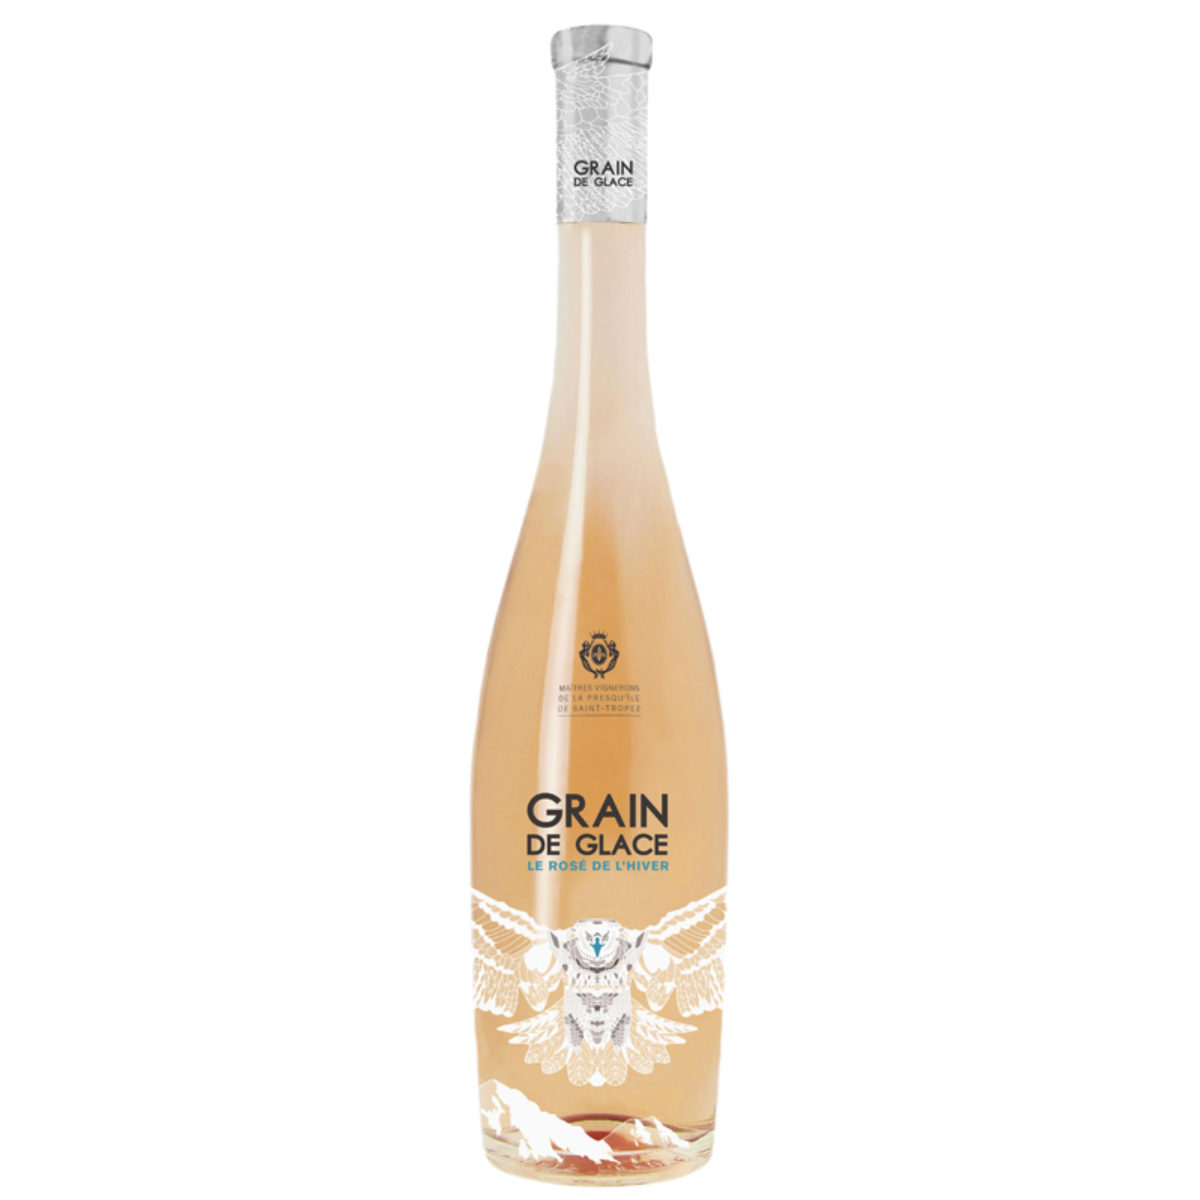 0510506 GRAIN DE GLACE ROSE 2019 75 CL M